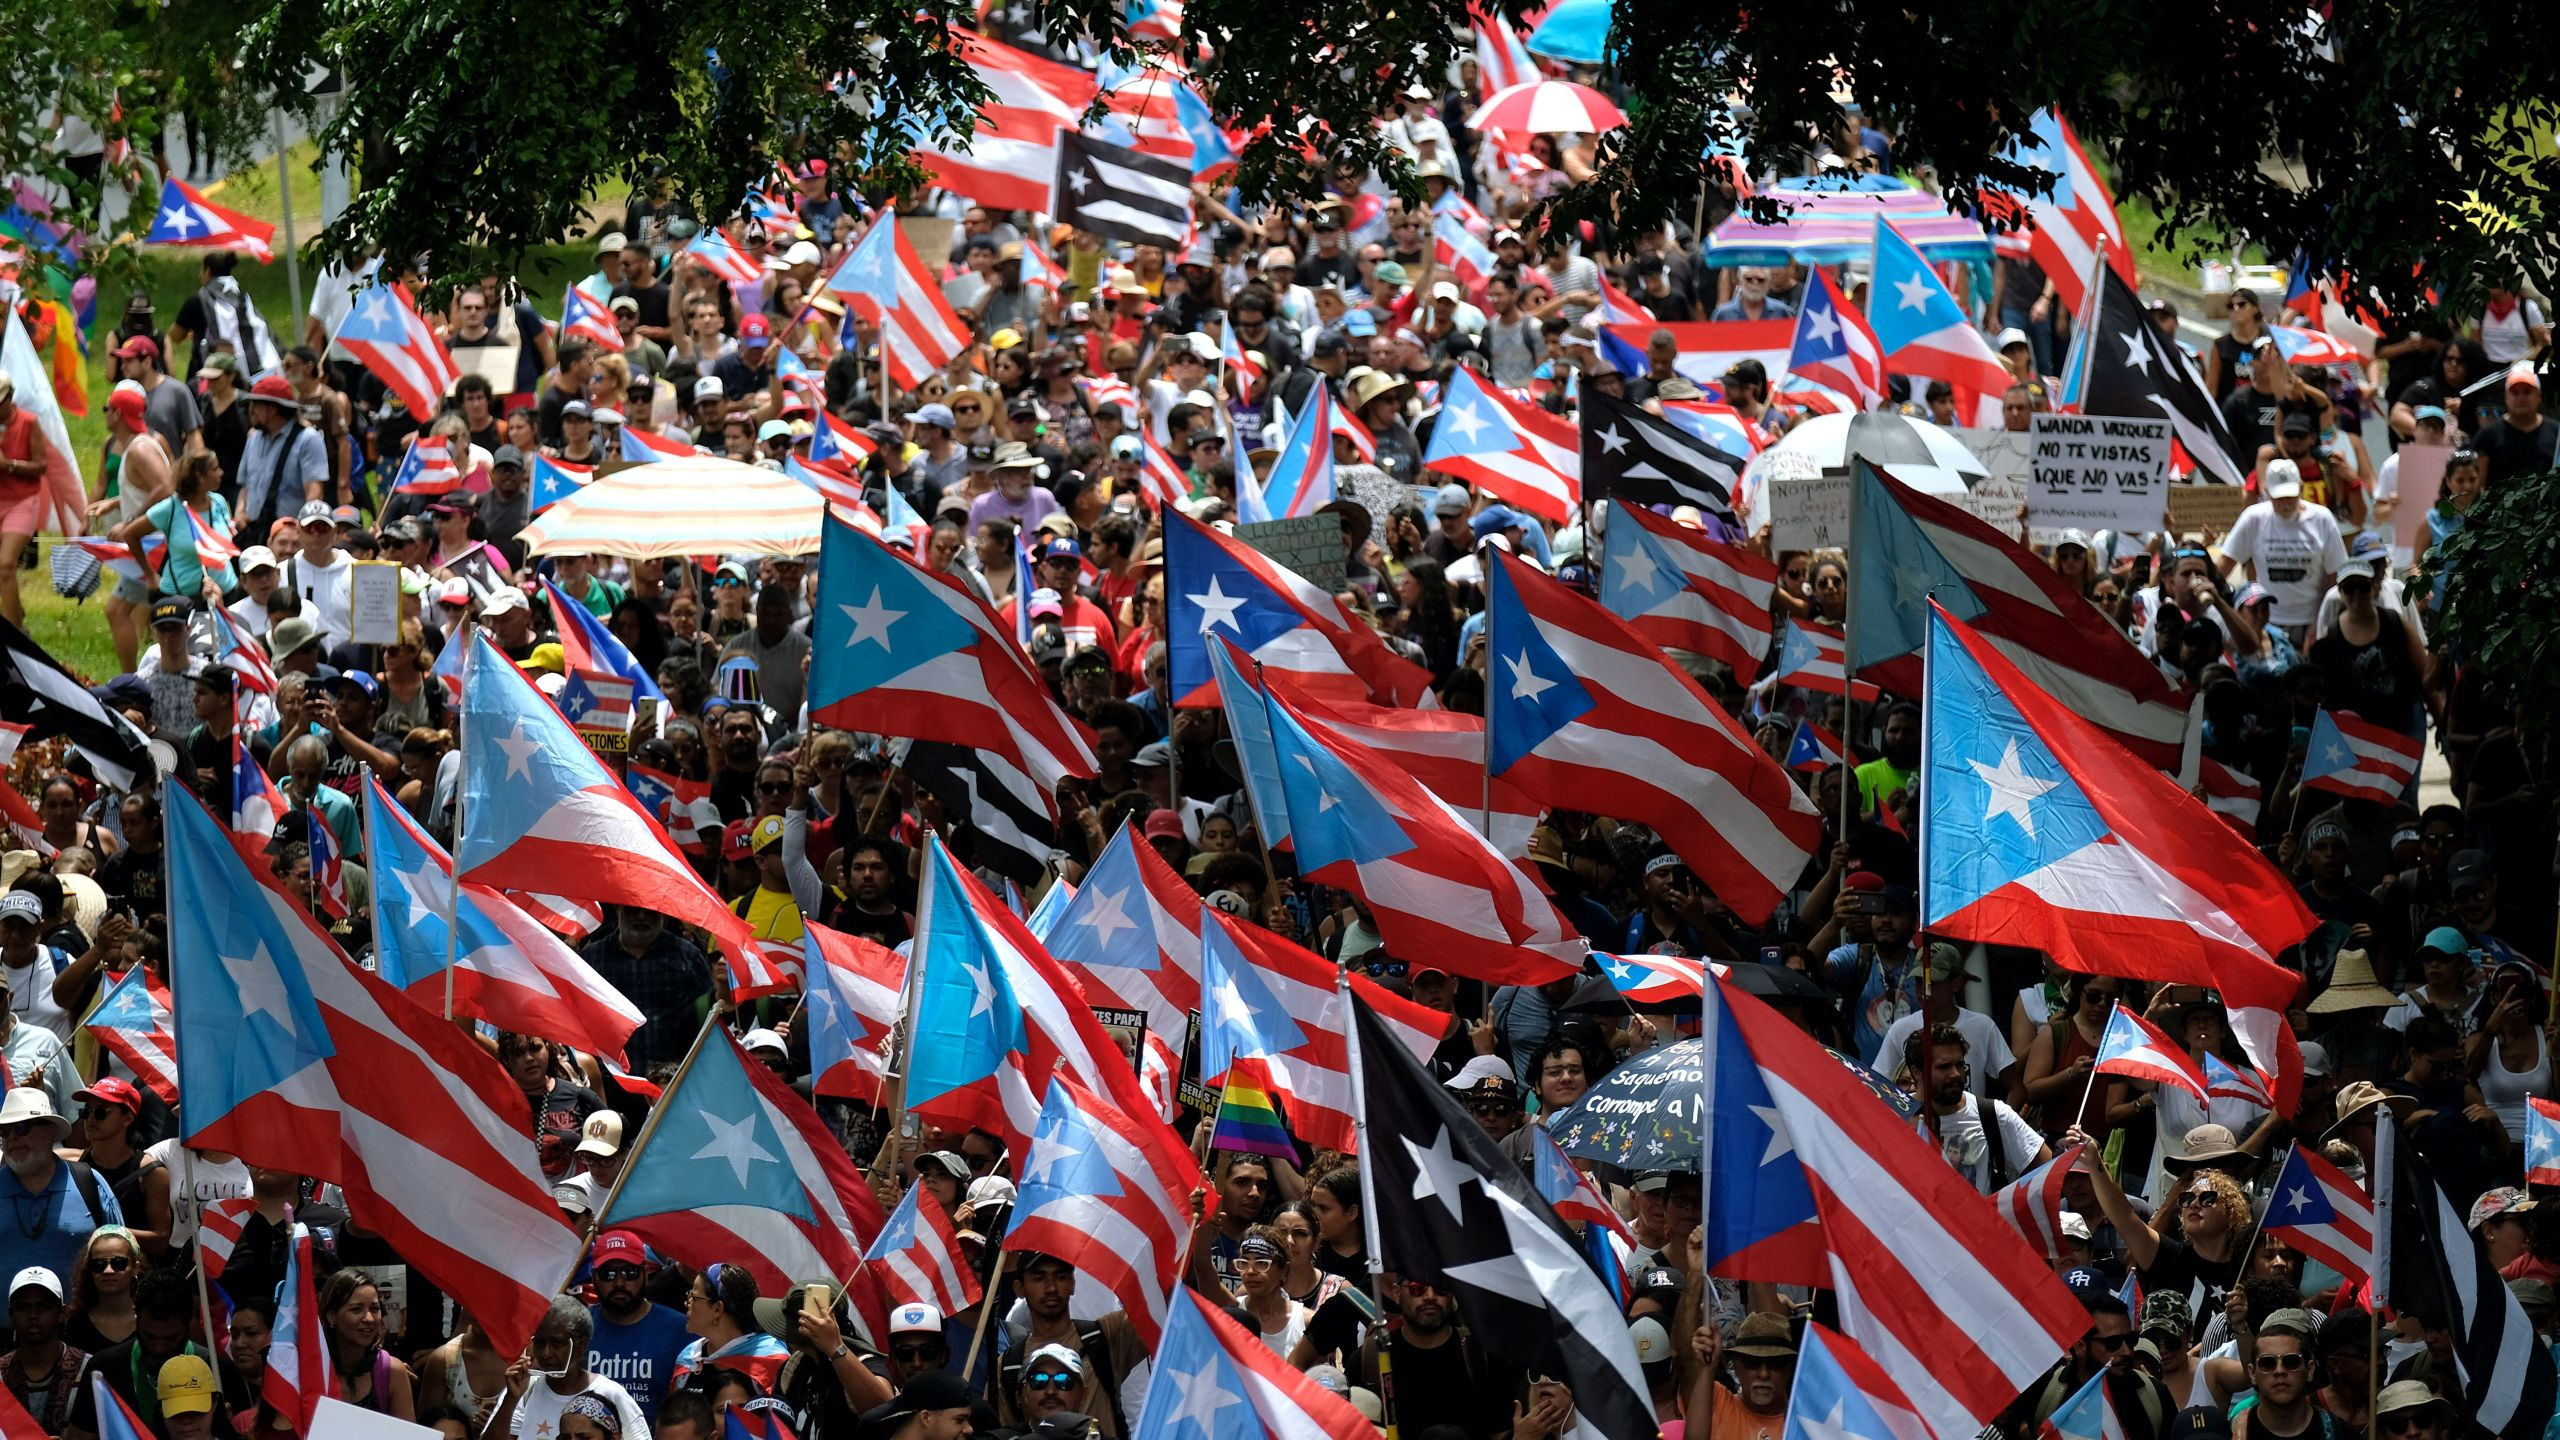 People march in San Juan on July 25, 2019, one day after the resignation of Puerto Rico Gov. Ricardo Rossello. (Credit: RICARDO ARDUENGO/AFP/Getty Images)